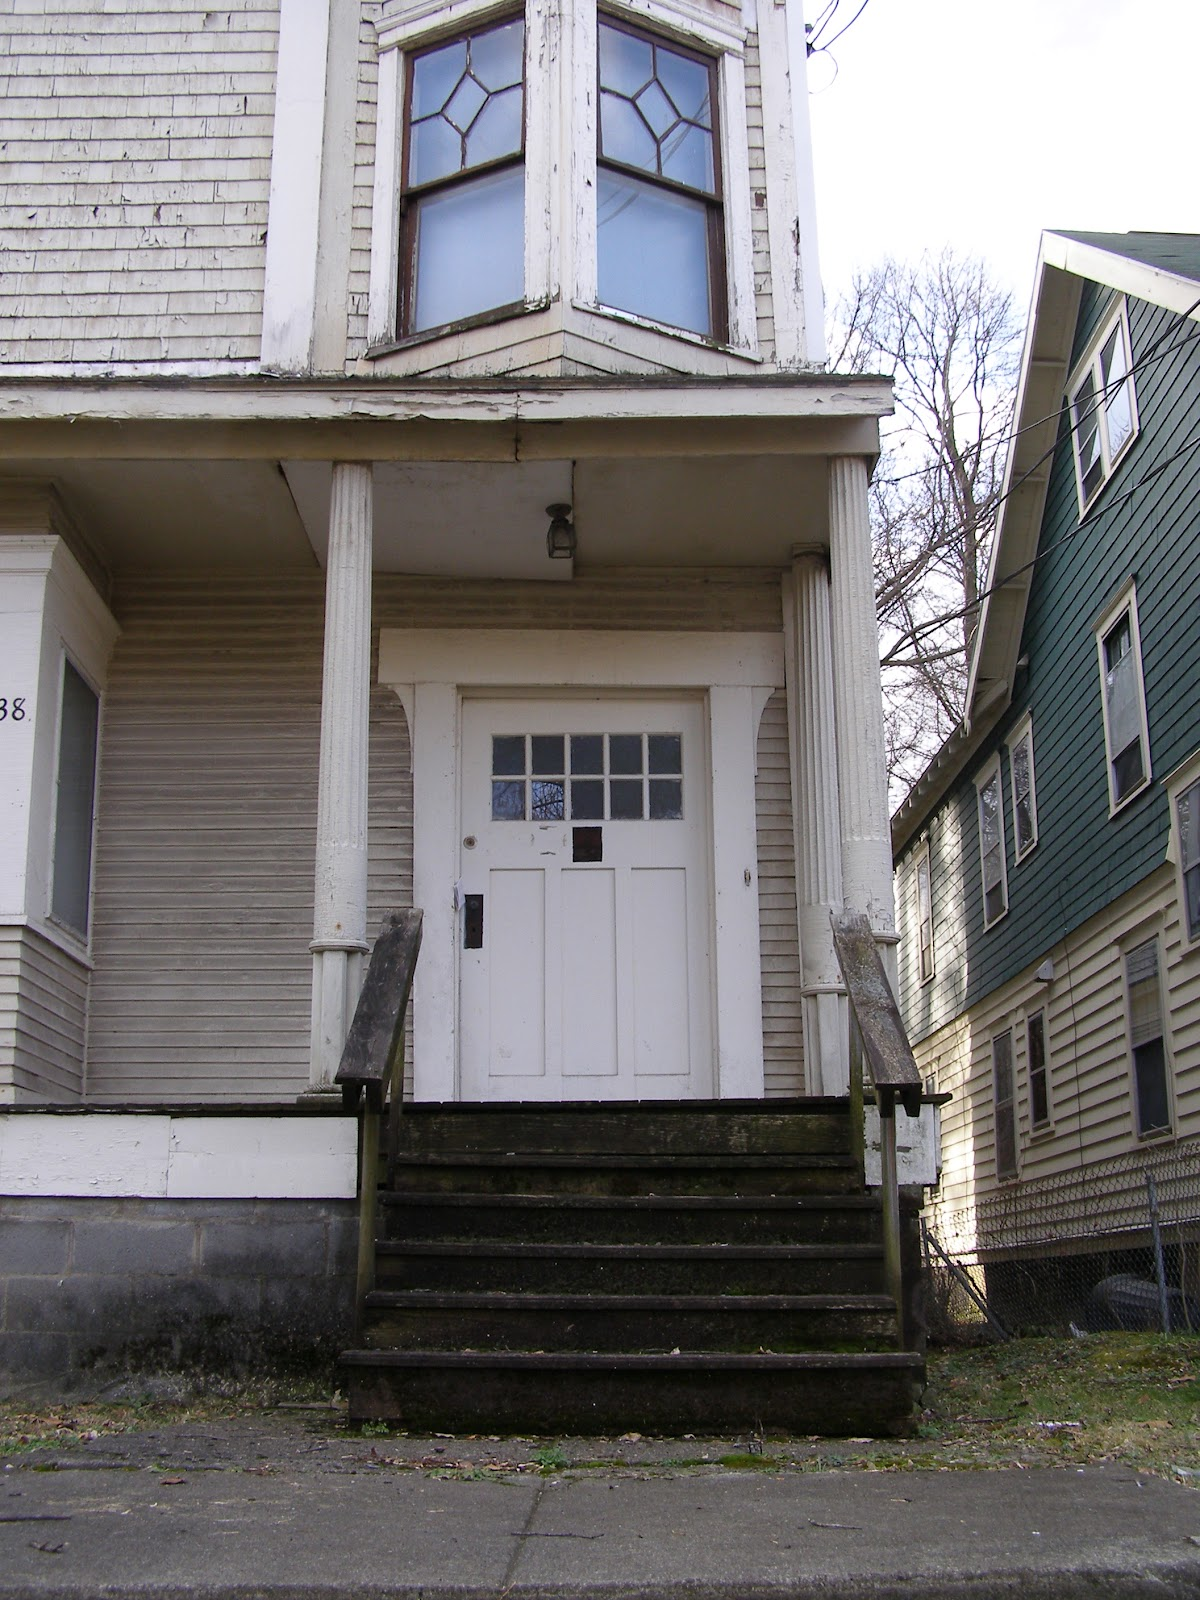 As Late As 2004 The Exterior Of The House Was Well Maintained, But Several  Years Ago The House Began To Be Noticeable Neglected.